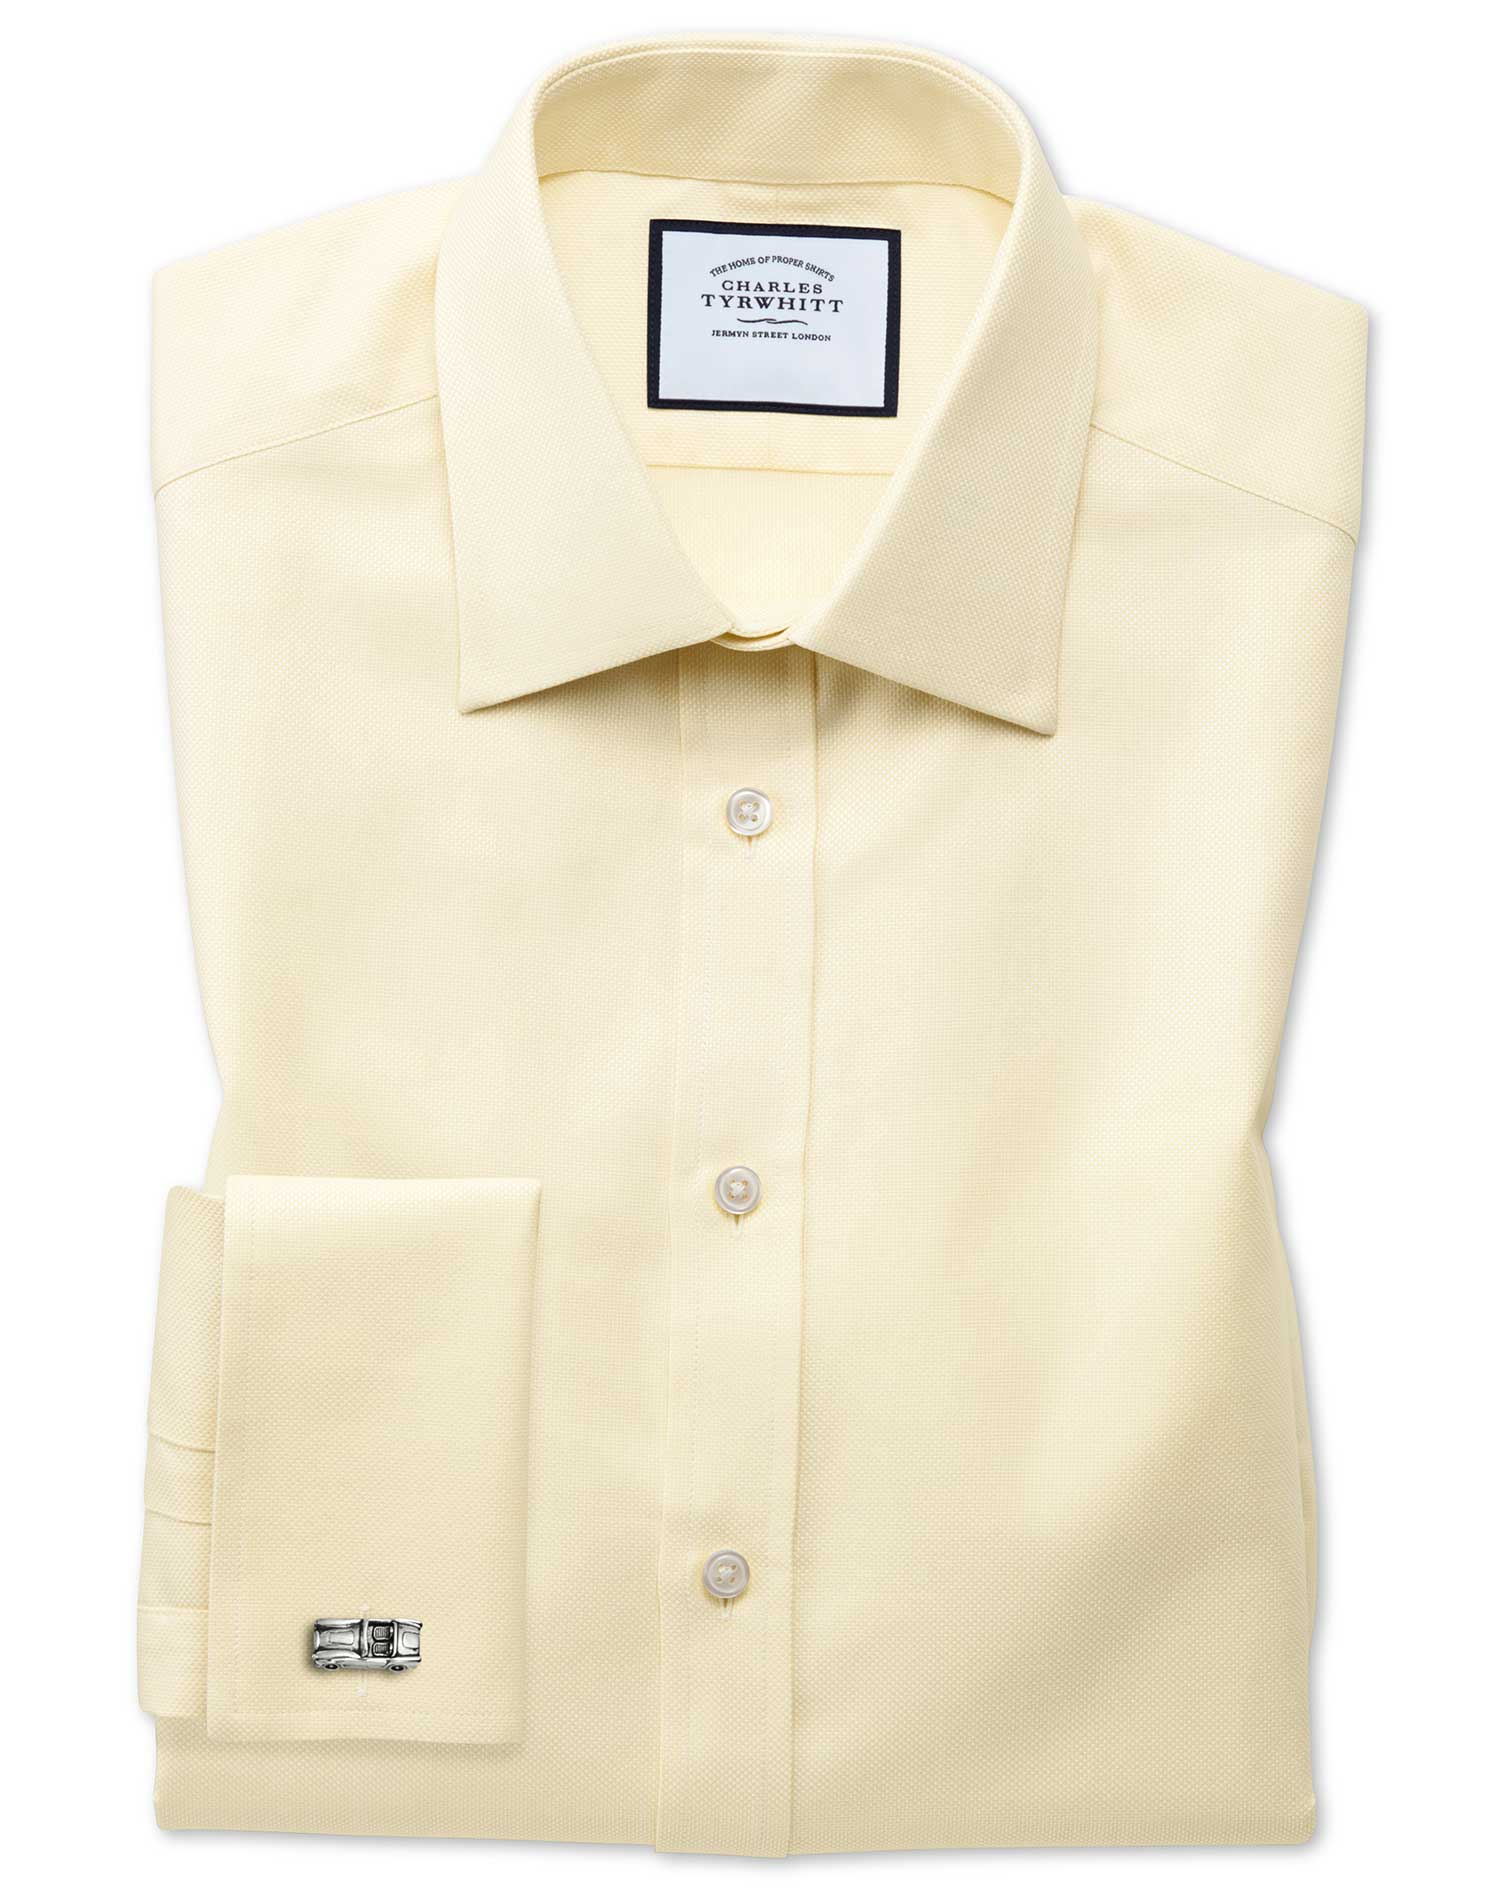 Extra Slim Fit Egyptian Cotton Royal Oxford Yellow Formal Shirt Single Cuff Size 15/34 by Charles Ty